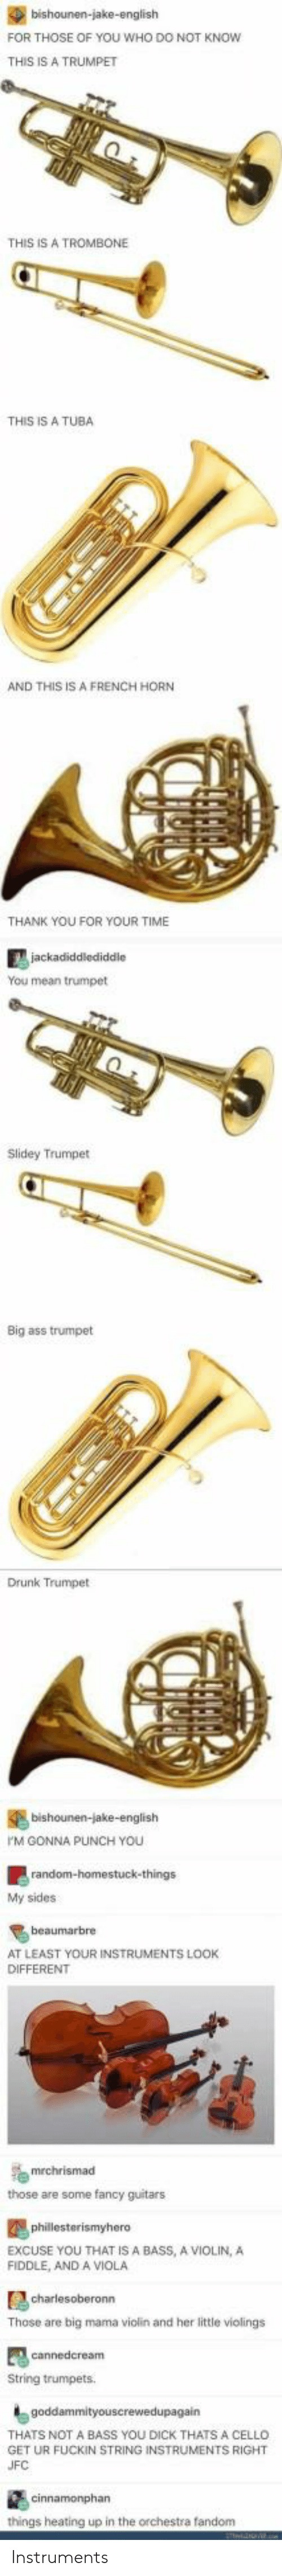 Ass, Drunk, and Thank You: FOR THOSE OF YOU WHO DO NOT KNOw  THIS IS A TRUMPET  THIS IS A TROMBONE  THIS IS A TUBA  AND THIS IS A FRENCH HORN  THANK YOU FOR YOUR TIME  You mean trumpet  Slidey Trumpet  Big ass trumpet  Drunk Trumpet  M GONNA PUNCH YOU  My sides  AT LEAST YOUR INSTRUMENTS LOOK  DIFFERENT  those are some fancy guitars  EXCUSE YOU THAT IS A BASS, A VIOLIN,A  FIDDLE, AND A VIOLA  Those are big mama violin and her little violings  String trumpets  THATS NOT A BASS YOU DICK THATS A CELLO  GET UR FUCKIN STRING INSTRUMENTS RIGHT  things heating up in the orchestra fandom Instruments